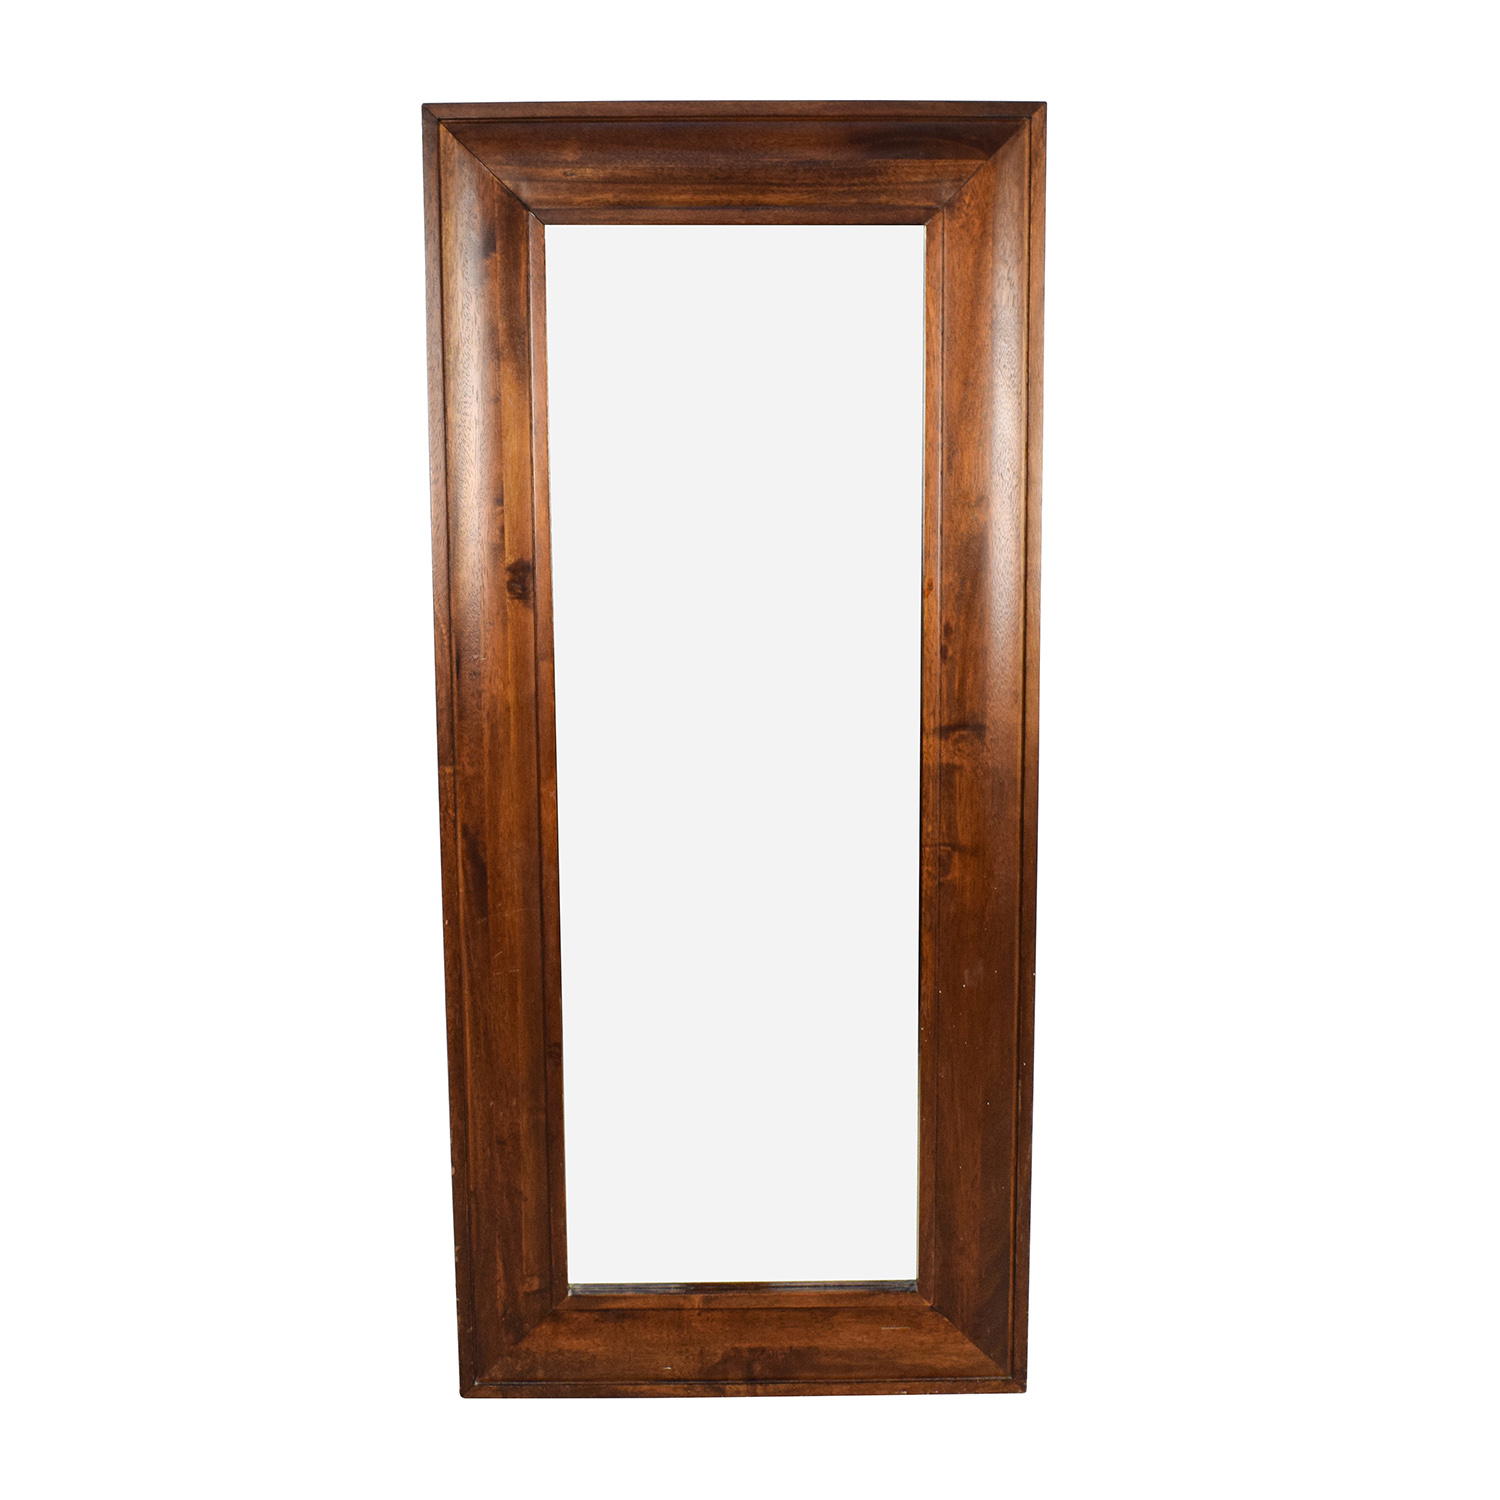 Cost plus world market used shop for Tall framed mirror